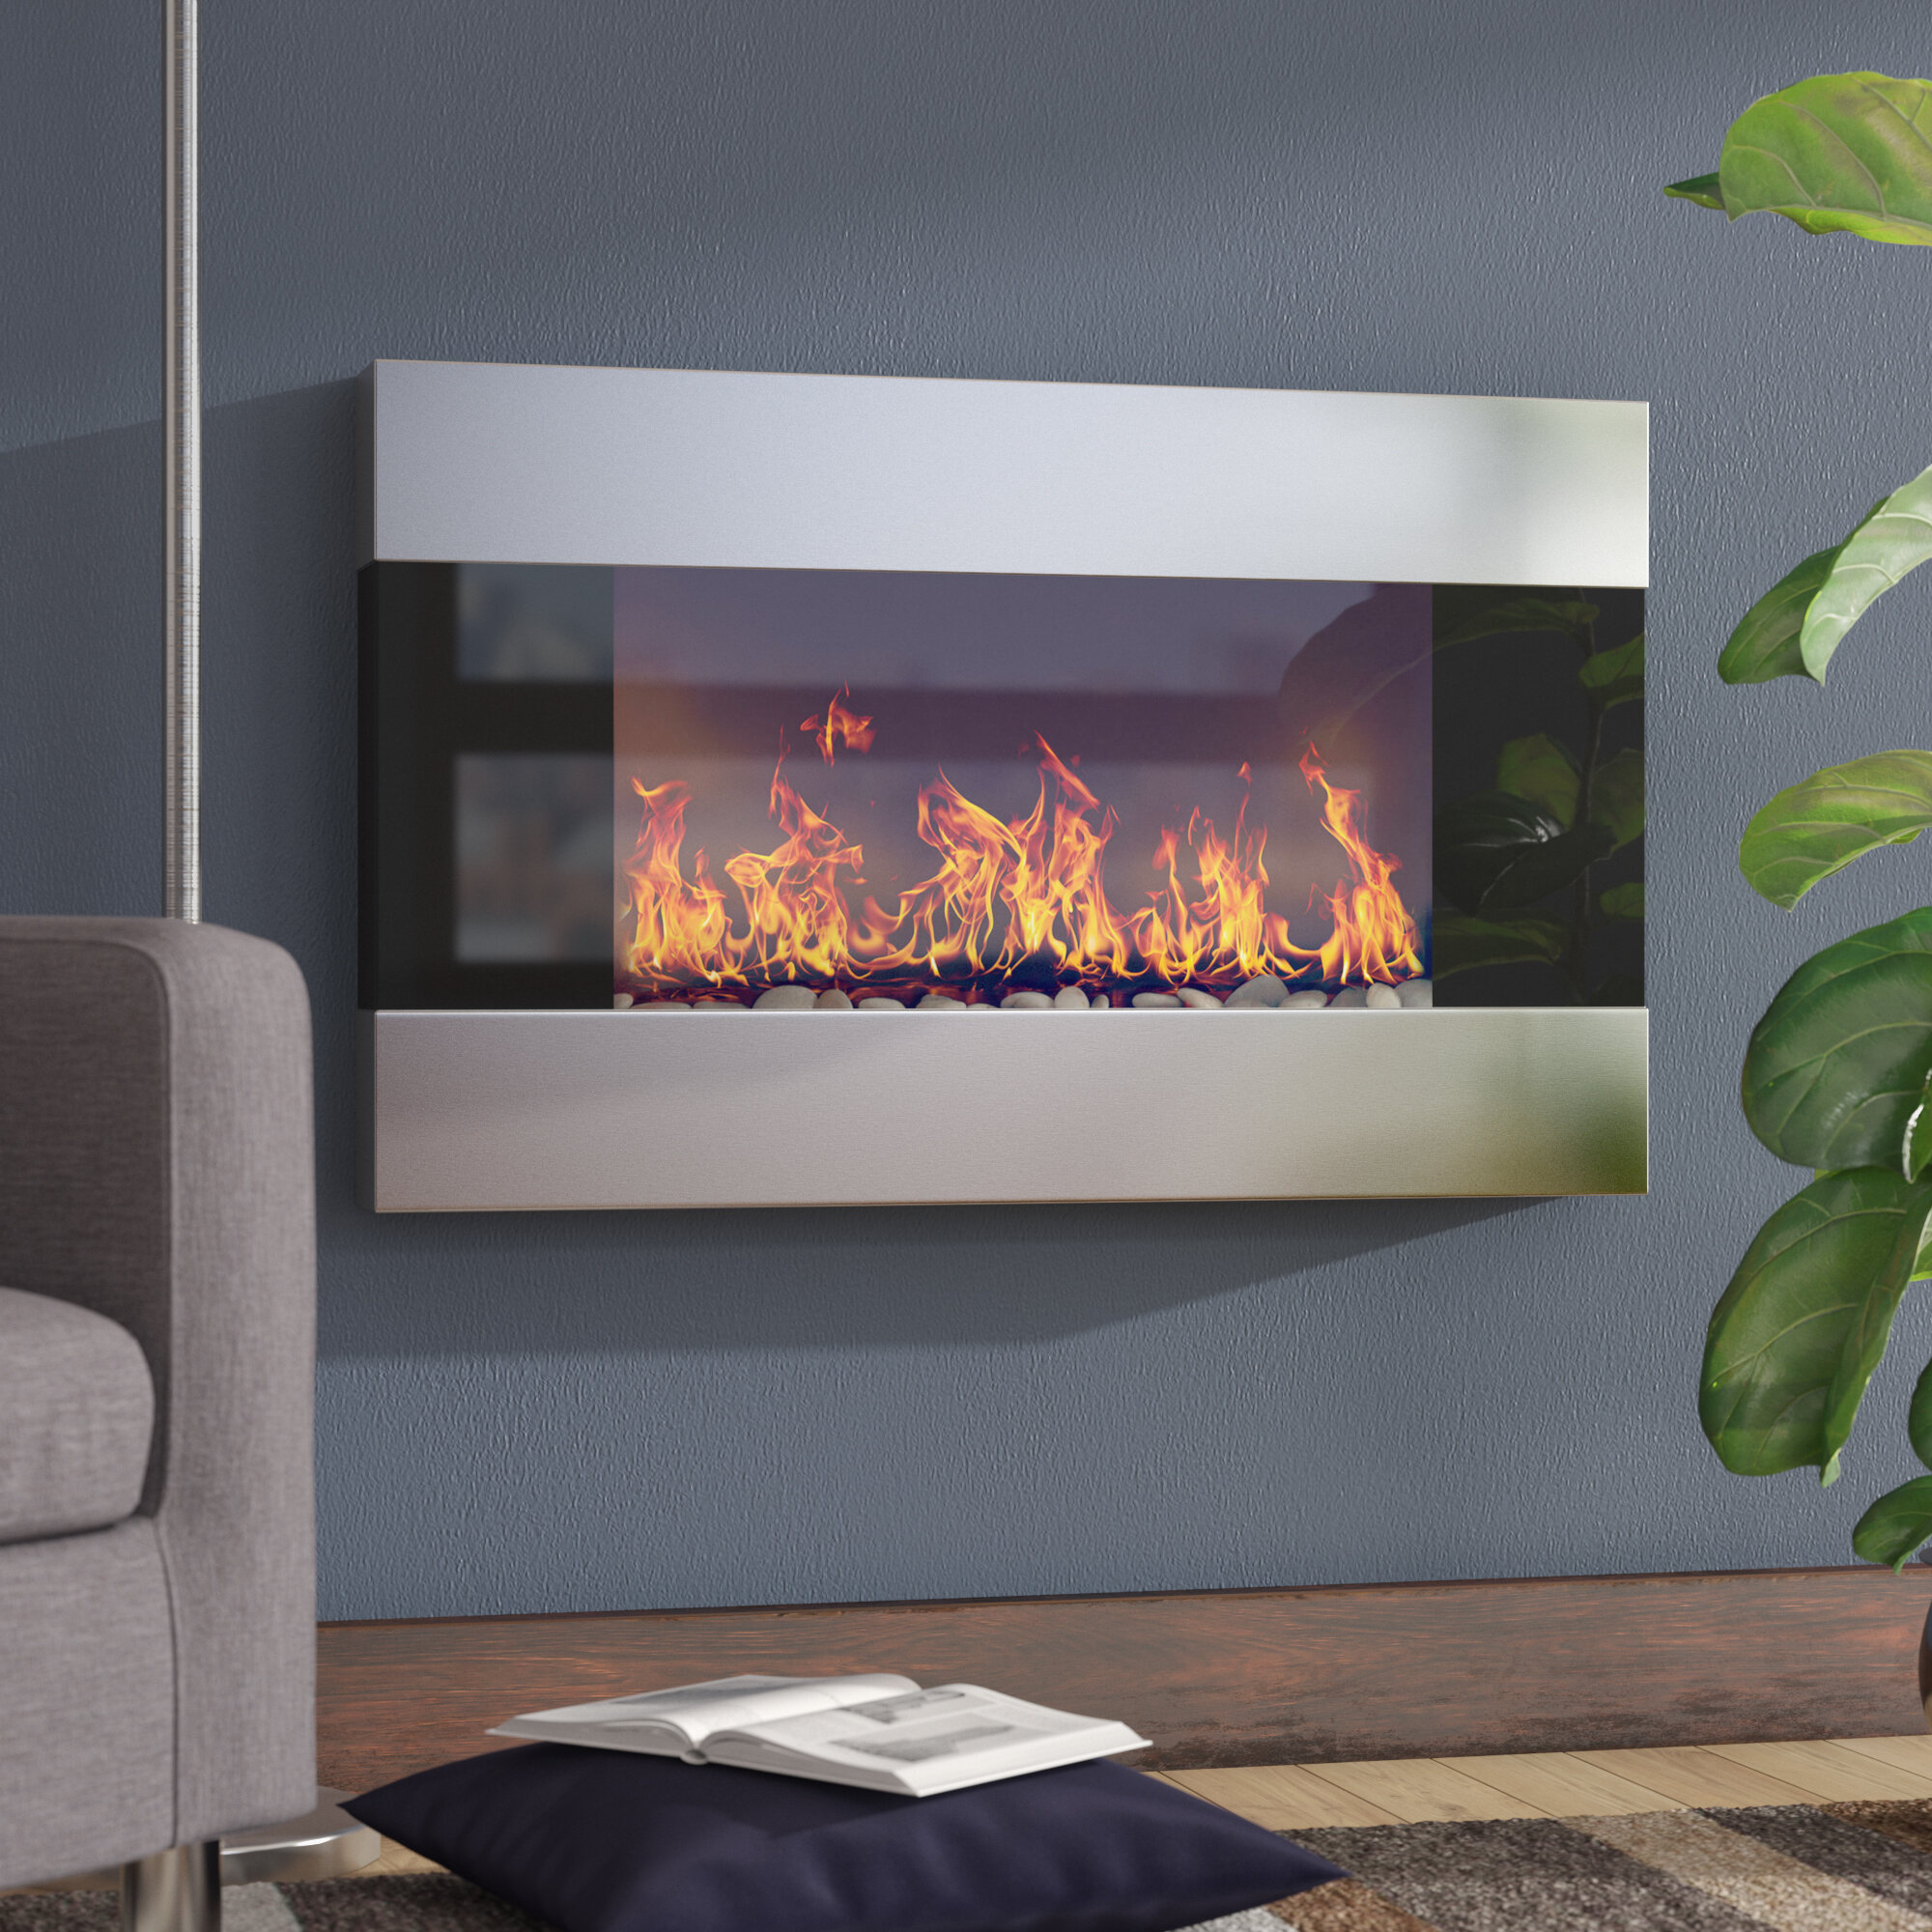 2 Sided Electric Fireplace Wayfair